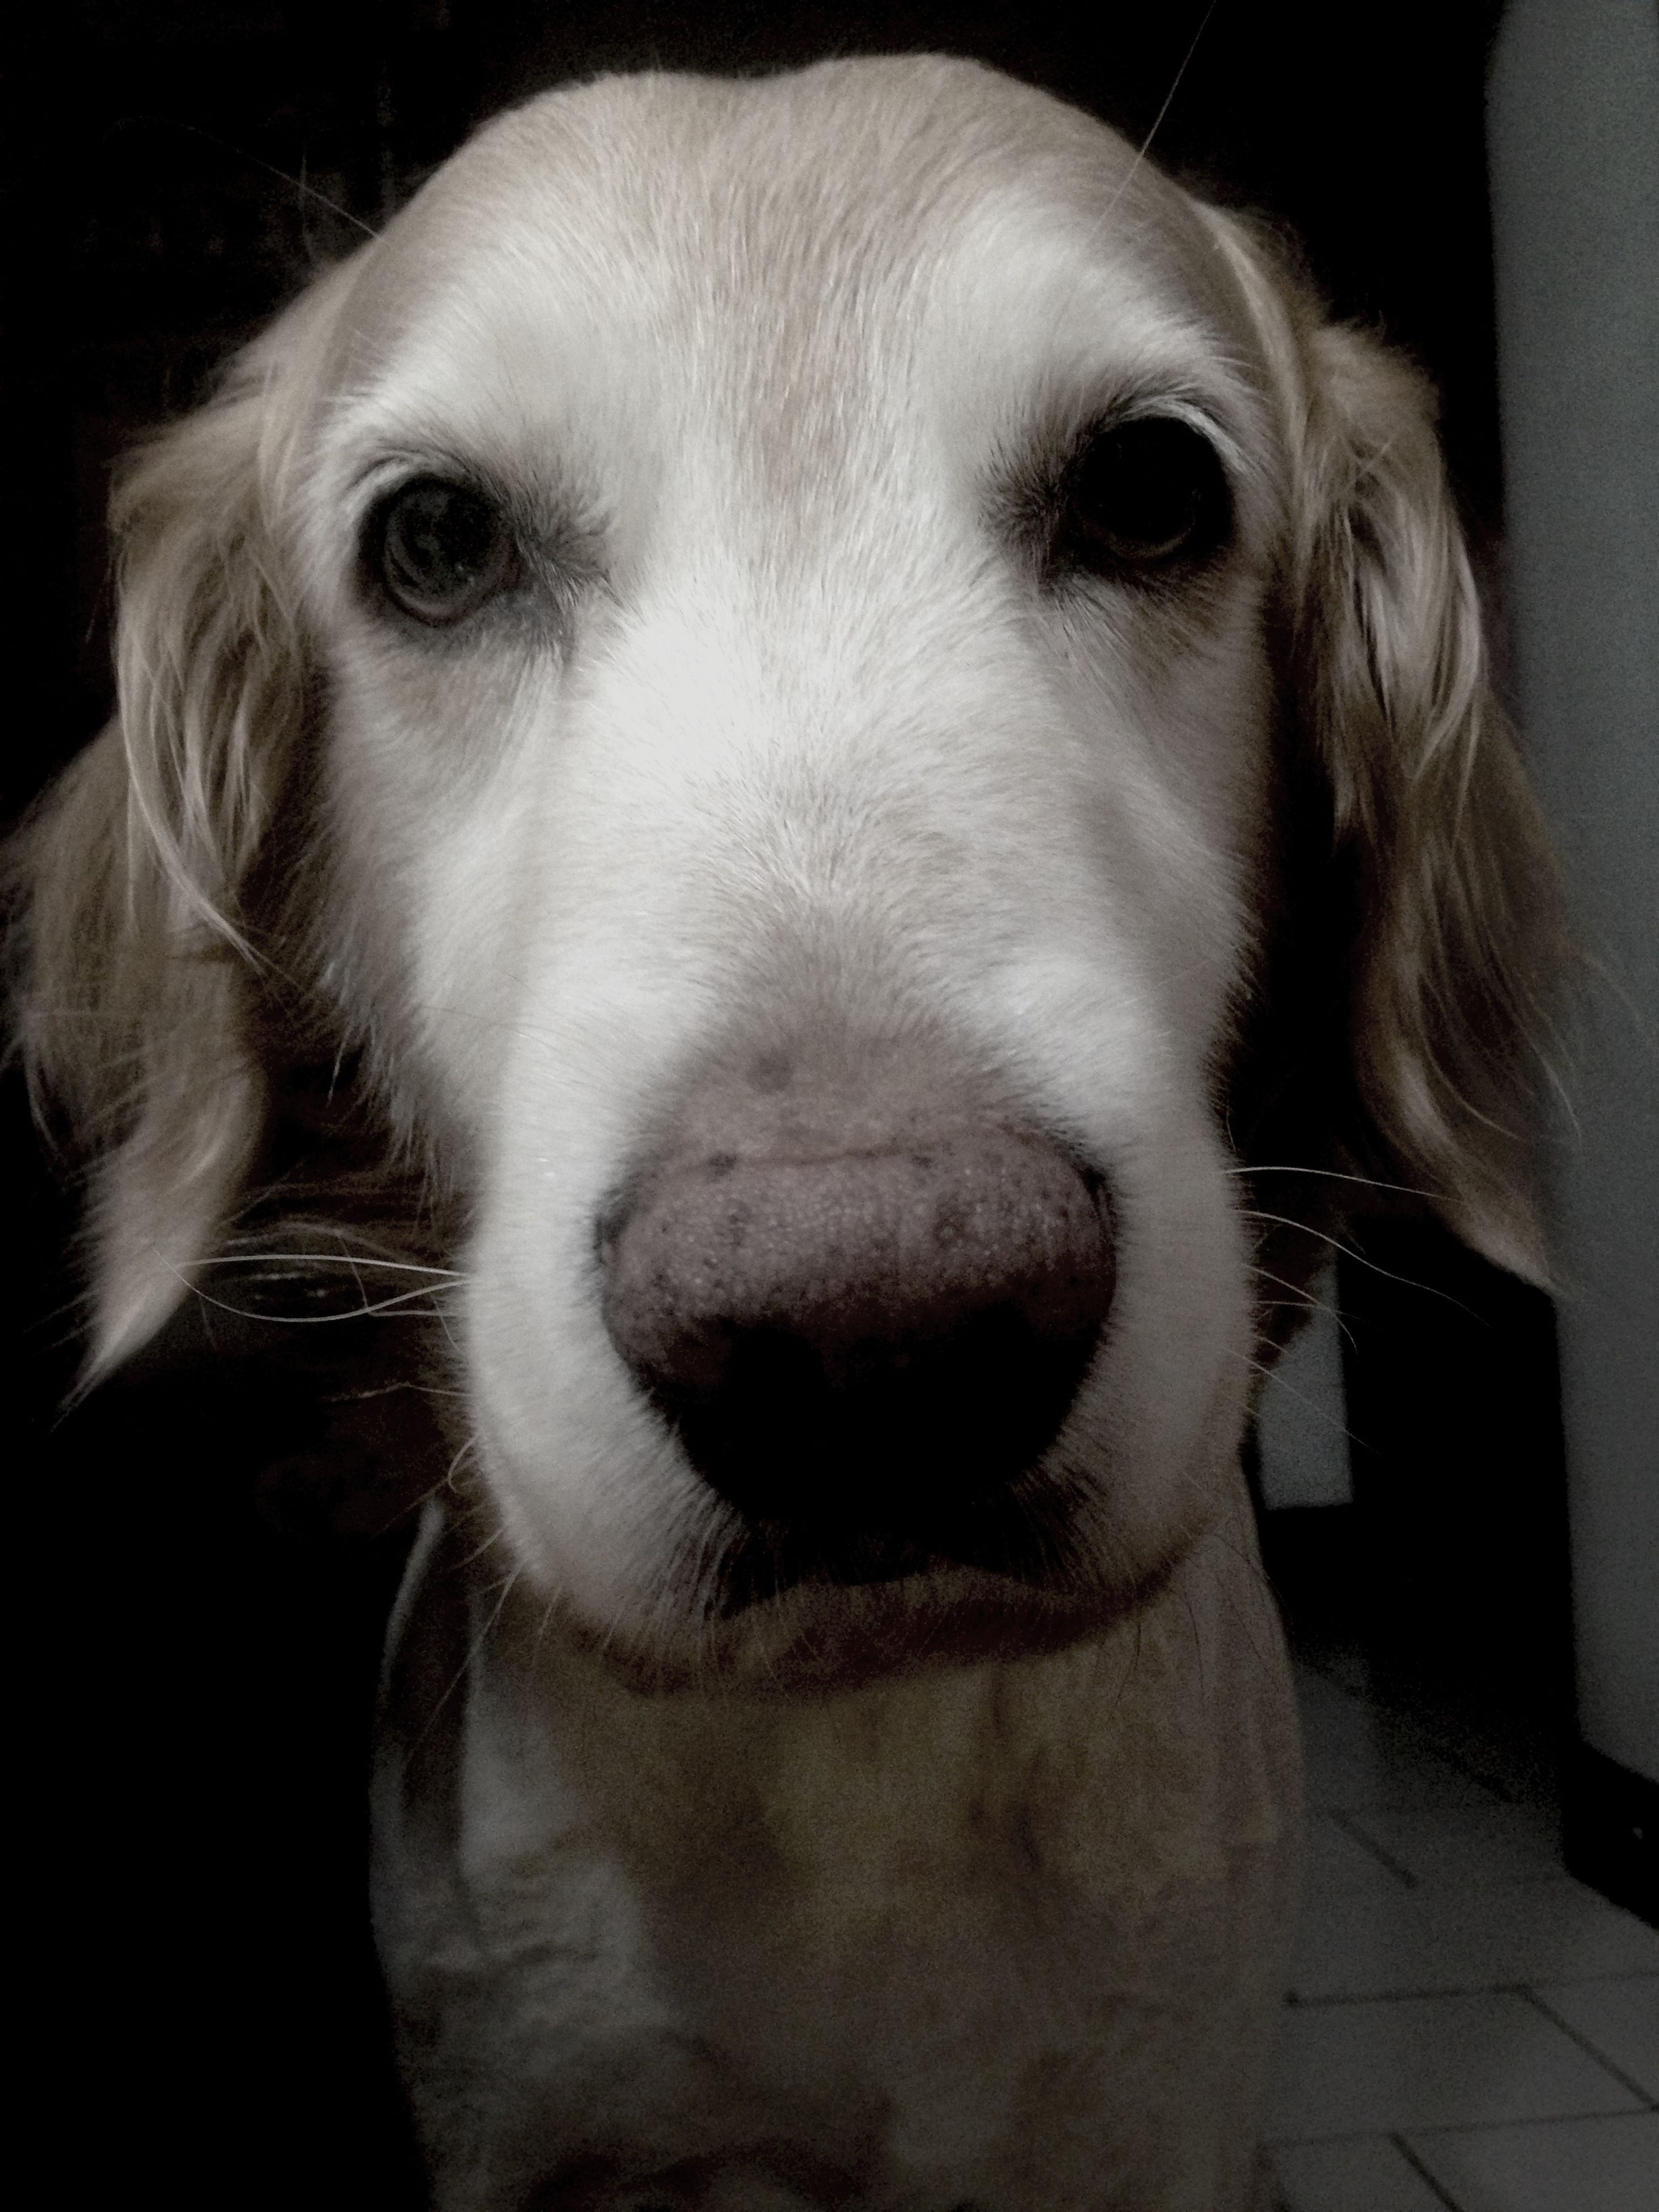 dog, animal themes, one animal, domestic animals, pets, mammal, close-up, animal head, indoors, portrait, animal body part, looking at camera, snout, loyalty, animal hair, focus on foreground, animal nose, front view, pampered pets